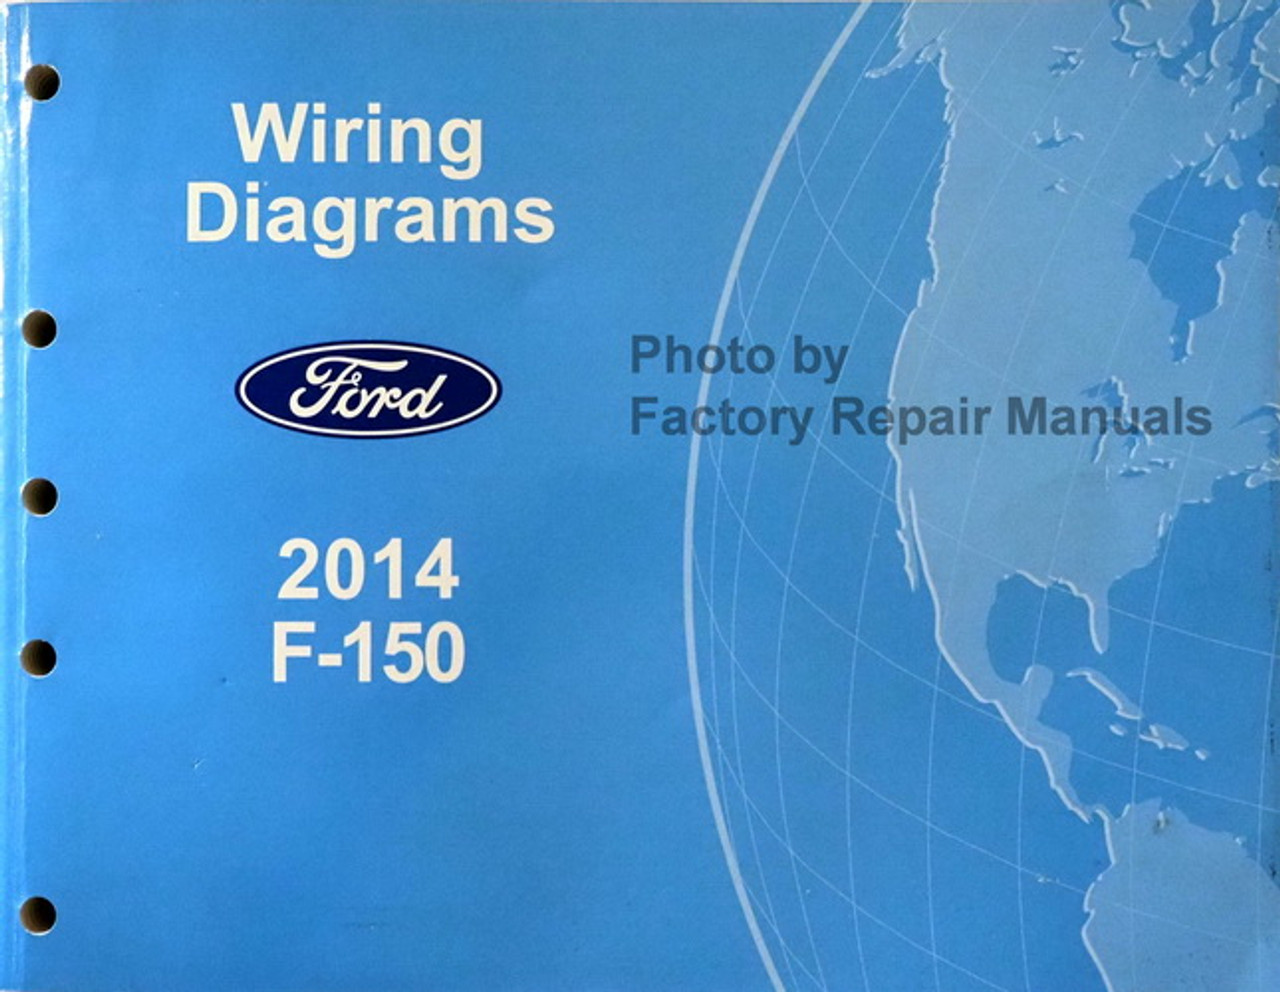 2014 Ford F-150 Electrical Wiring Diagrams Manual F150 Truck Original -  Factory Repair Manuals | Ford F Series Wiring Diagrams |  | Factory Repair Manuals